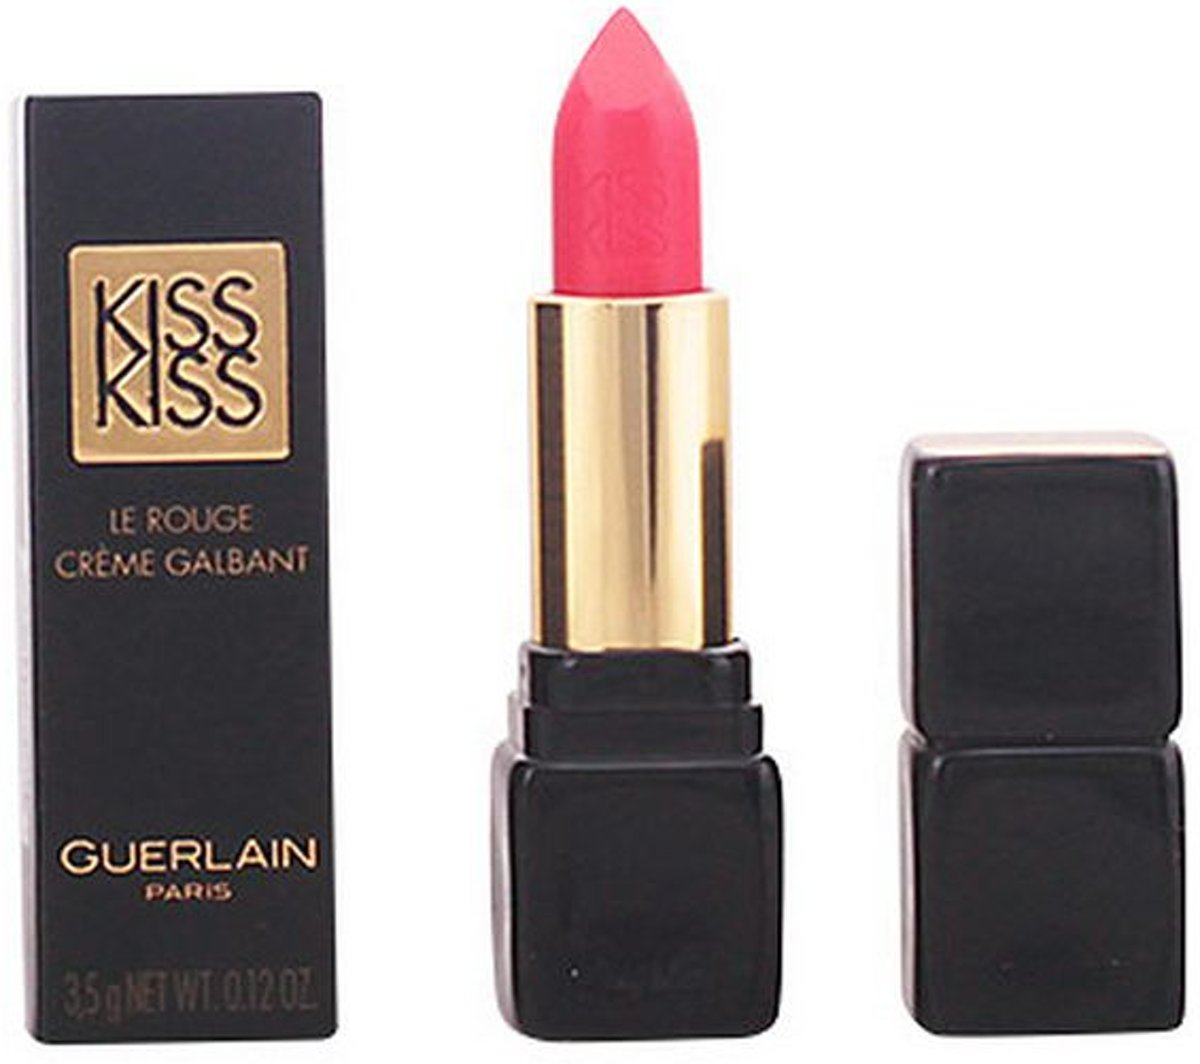 Guerlain Kiss Kiss Creamy Shaping Lip Colour -372 All About Pink - Lipstick